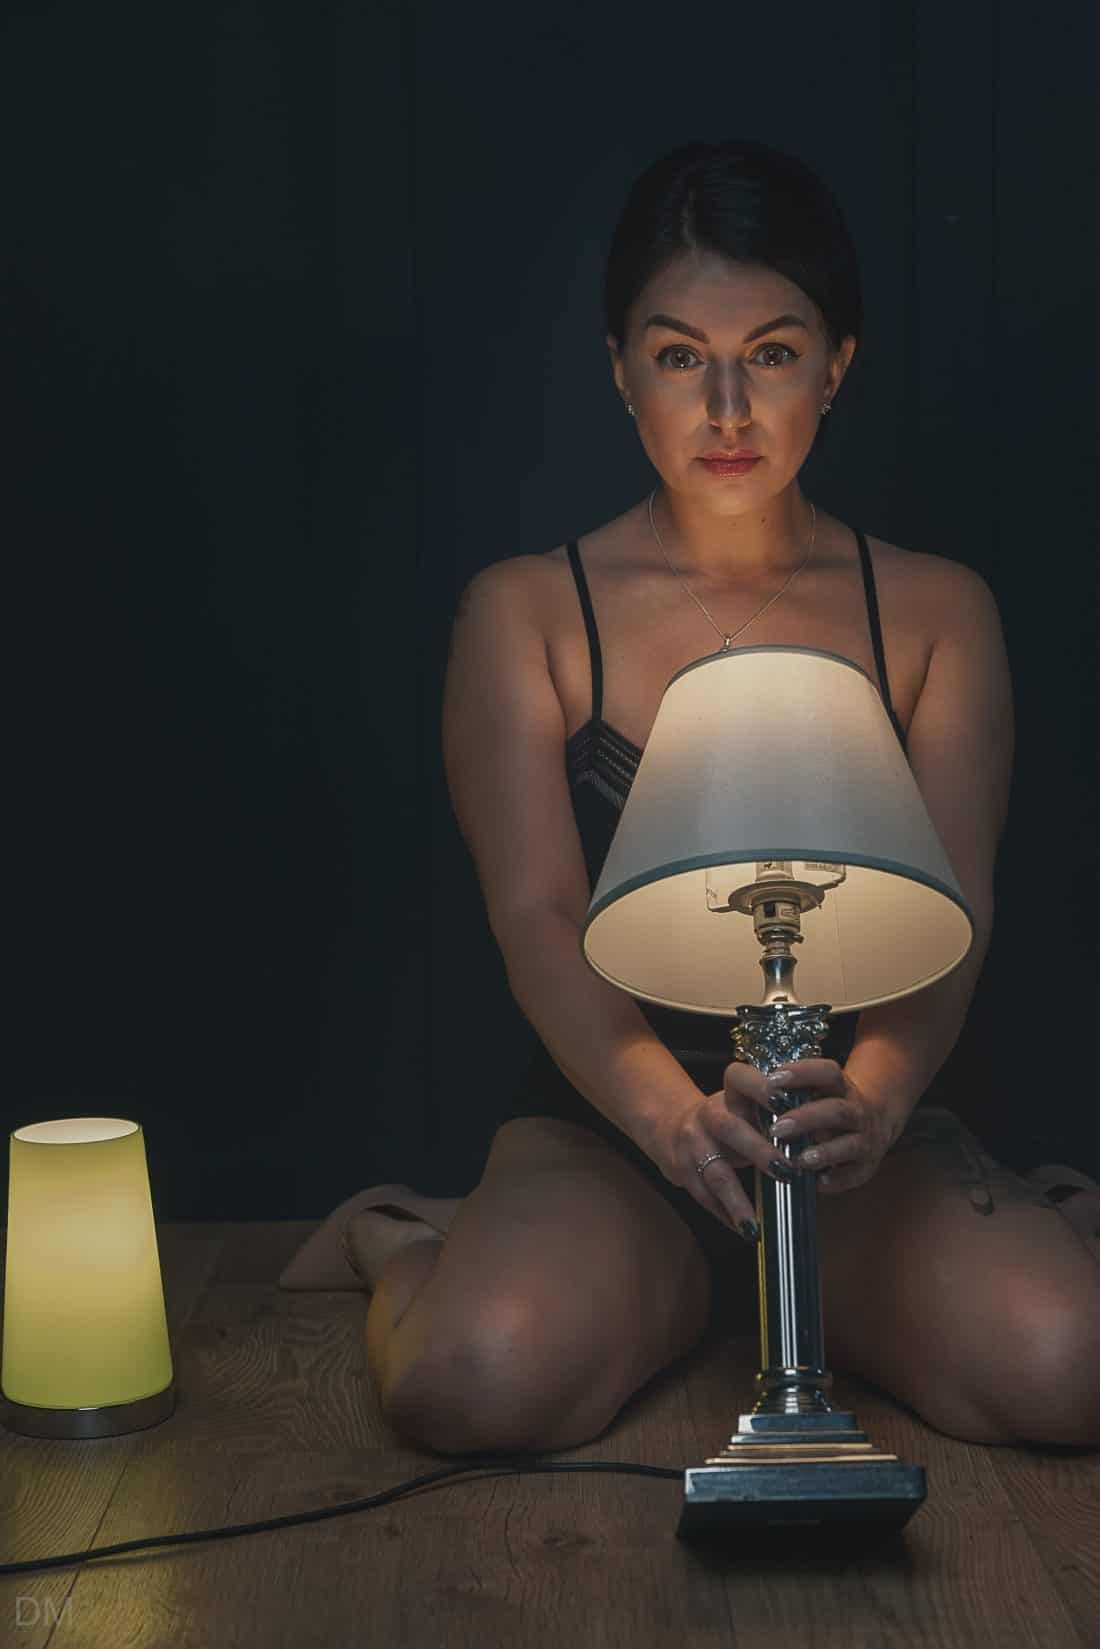 Photograph of female model holding a table lamp